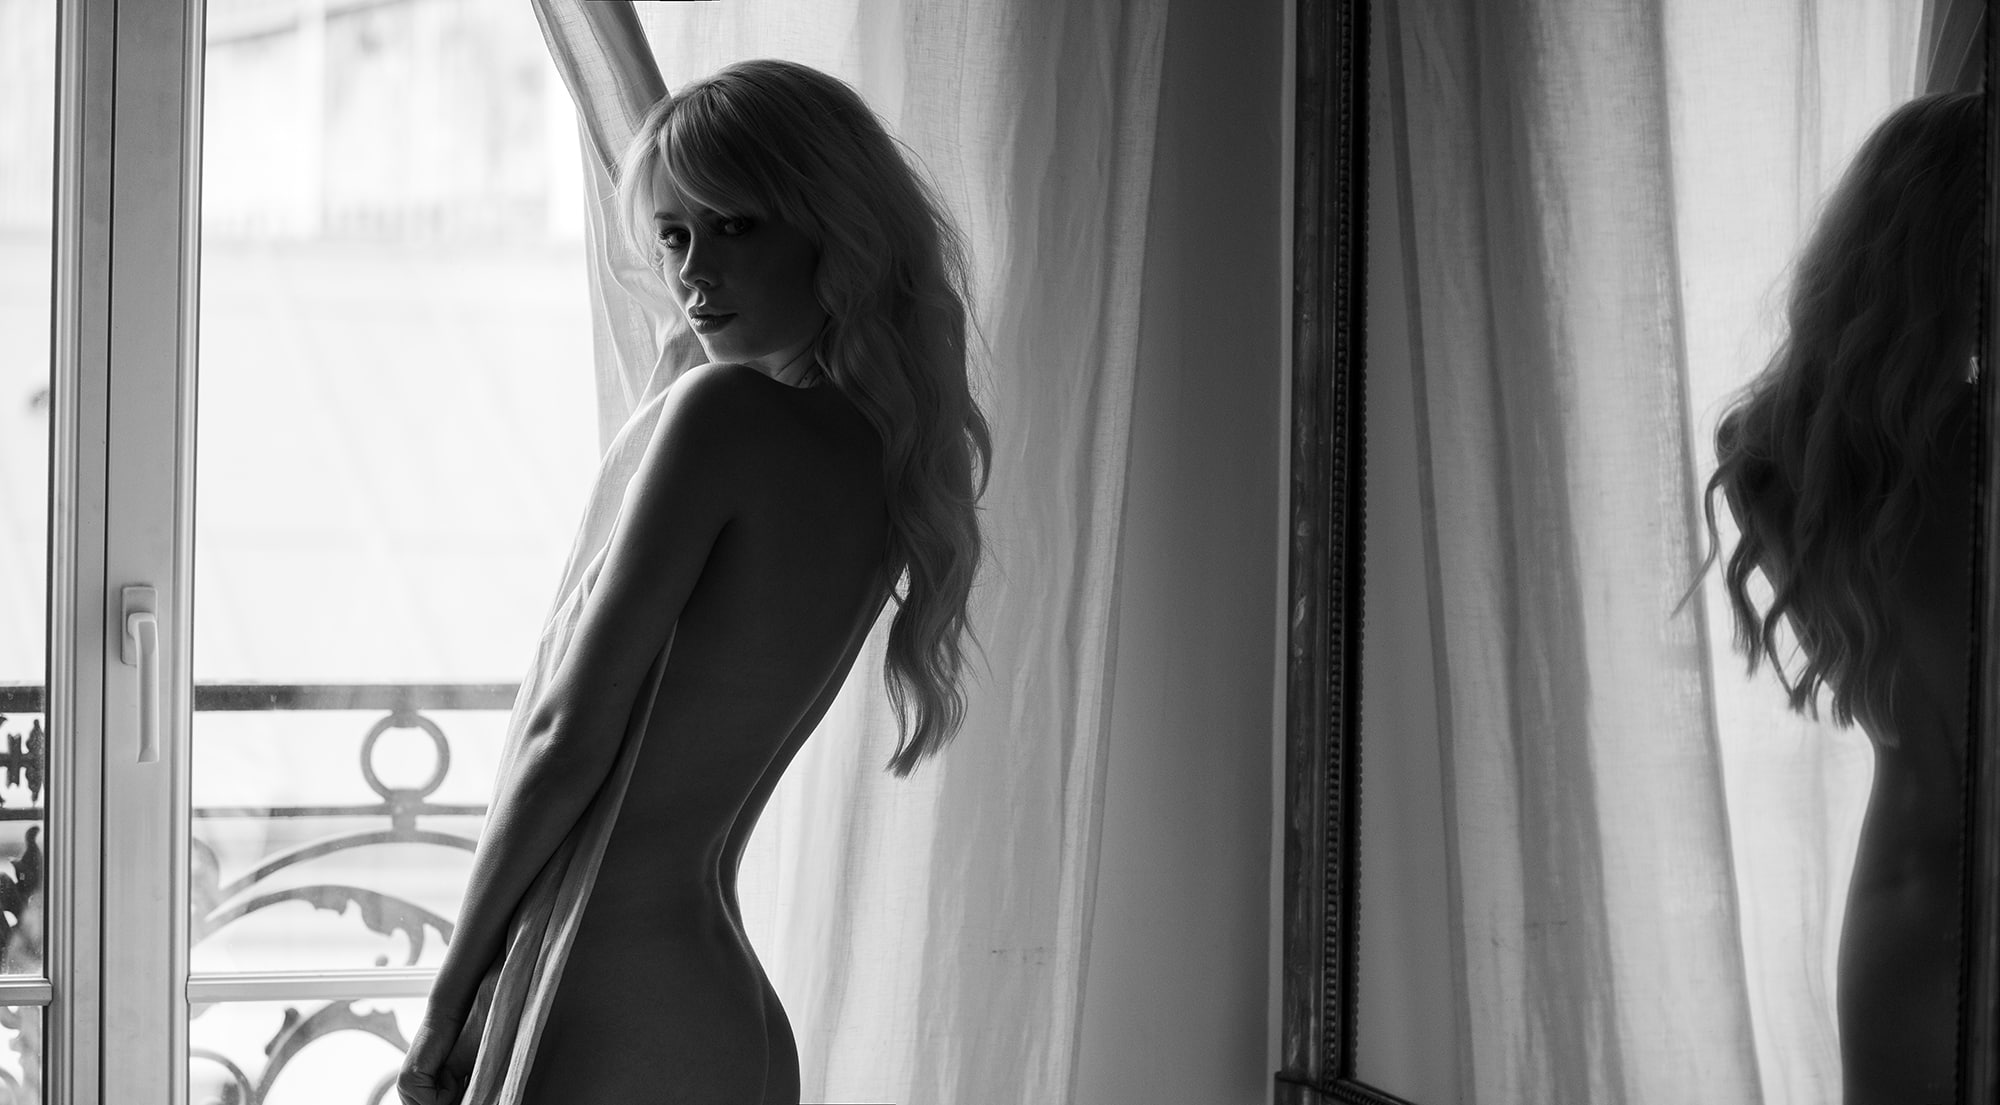 sarah loven Brigitte Bardot inspired nude photo